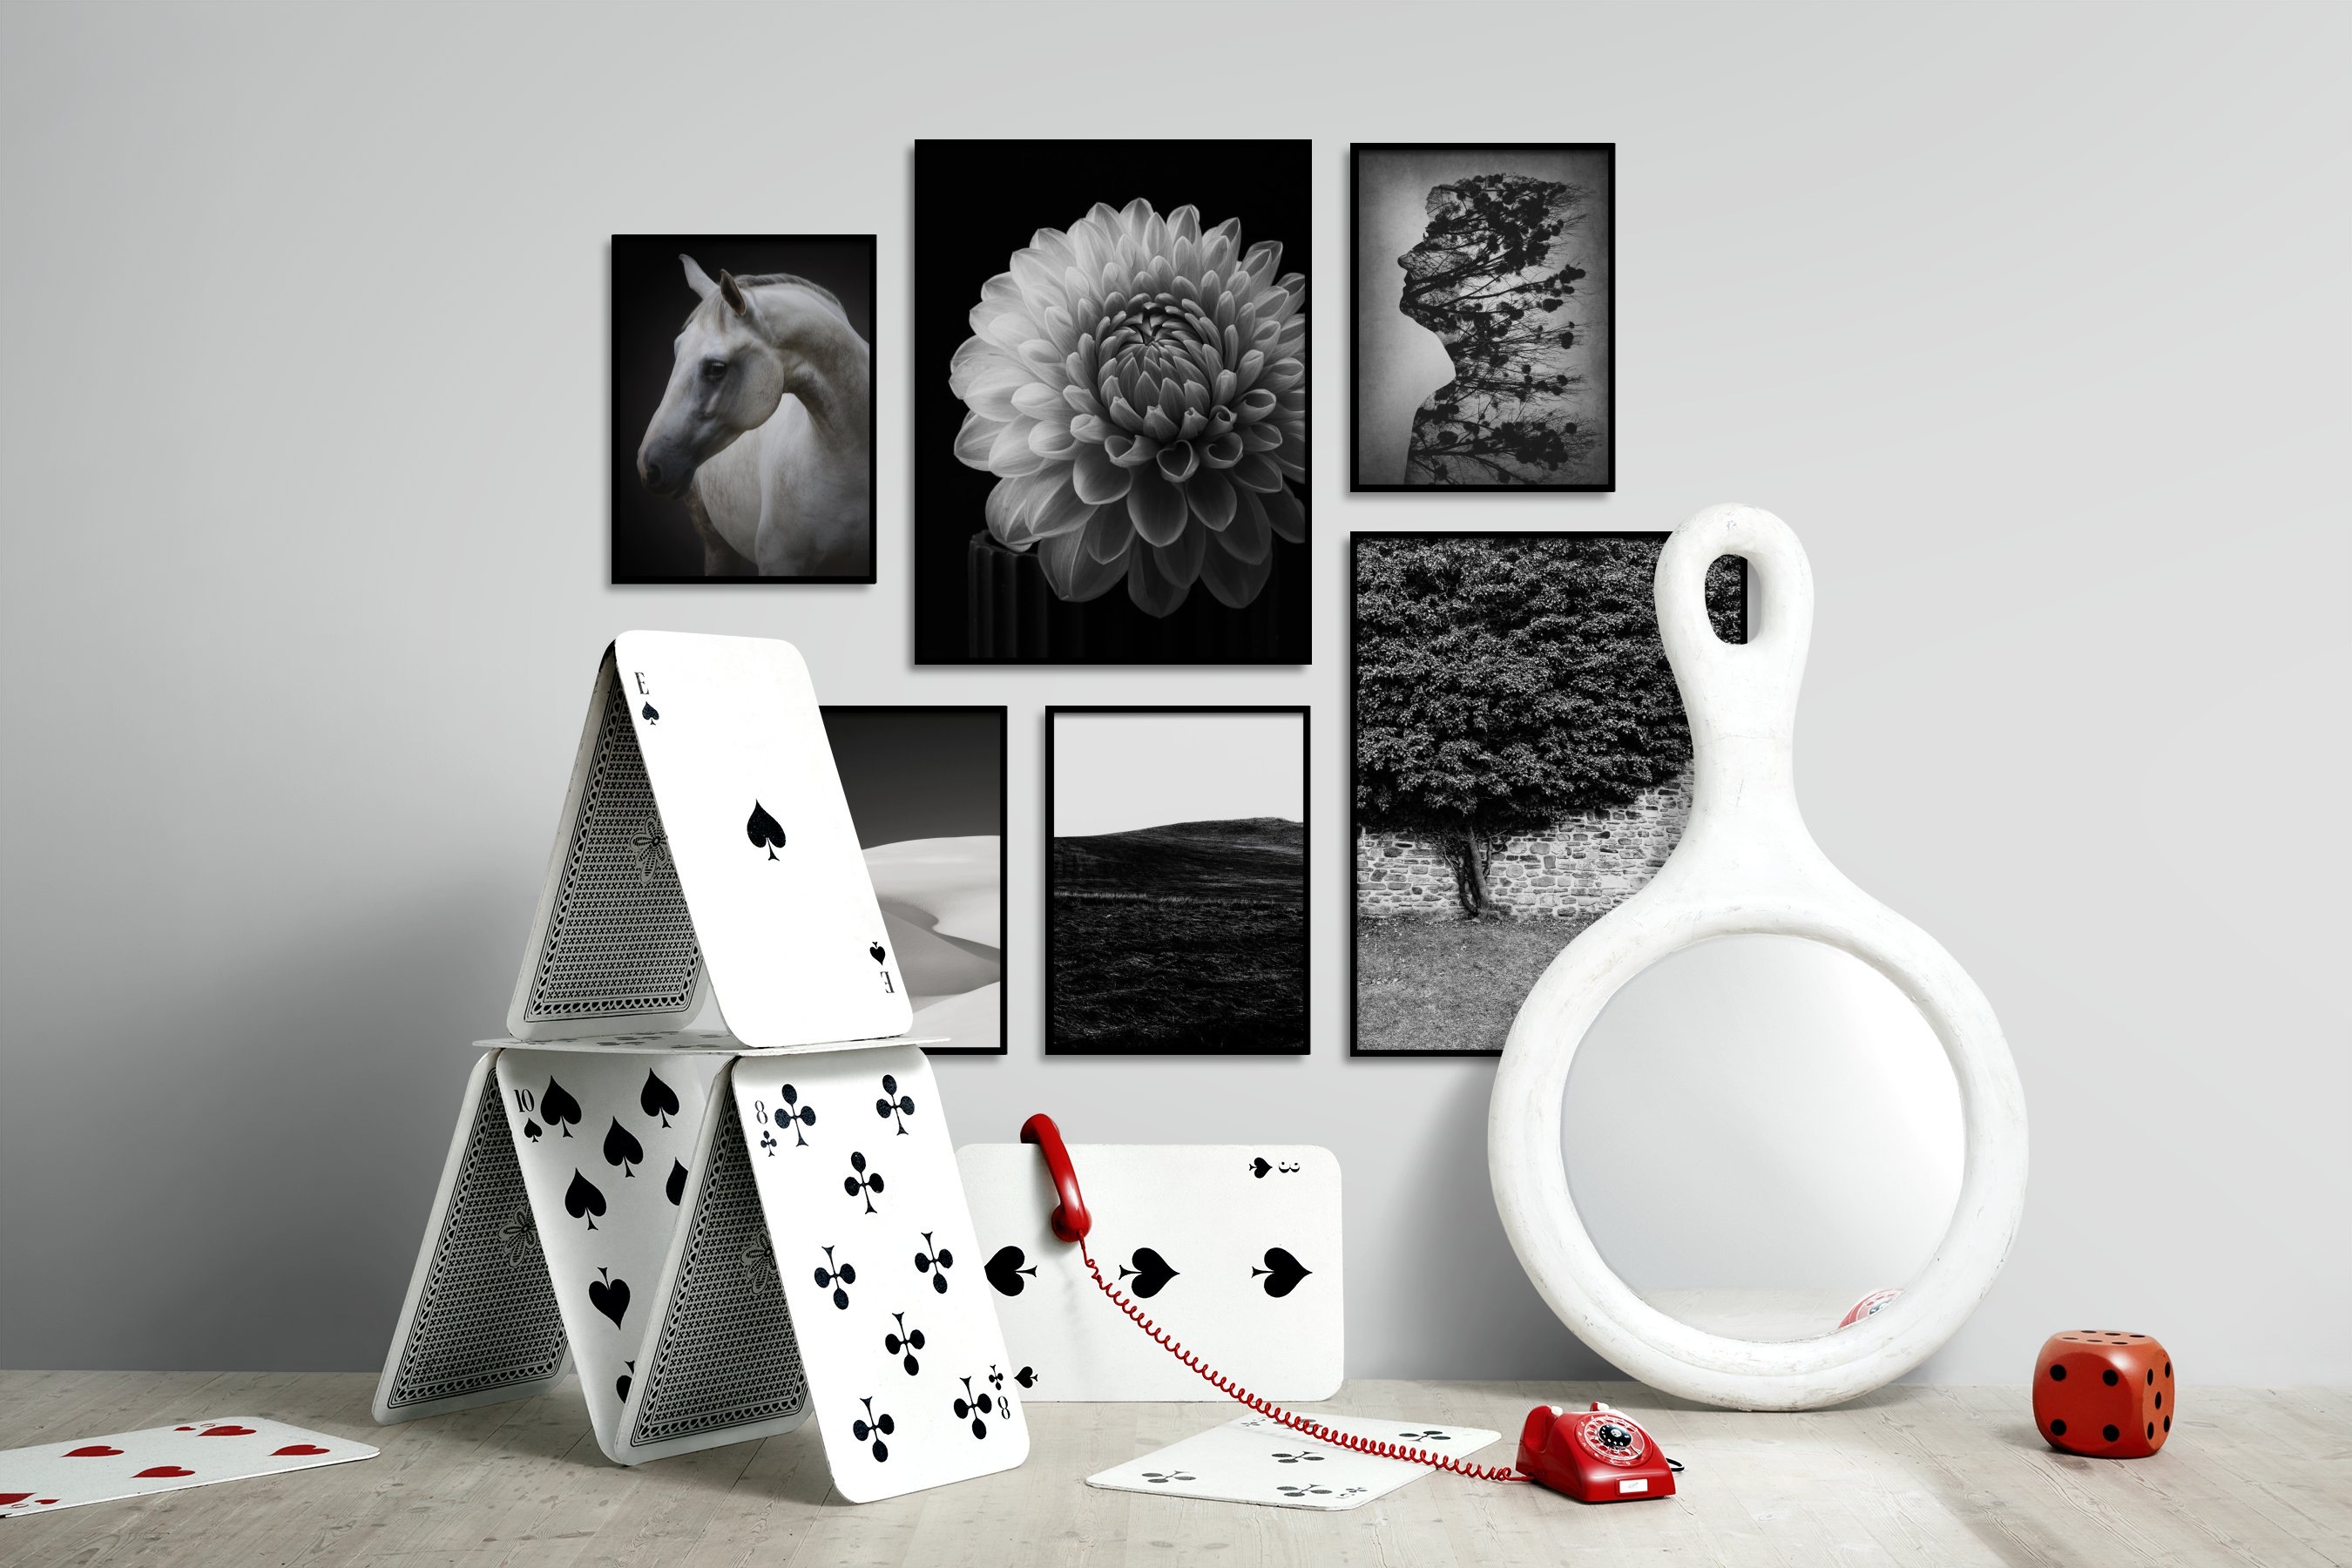 Gallery wall idea with six framed pictures arranged on a wall depicting Dark Tones, Animals, Country Life, Black & White, For the Moderate, Flowers & Plants, For the Minimalist, and Nature